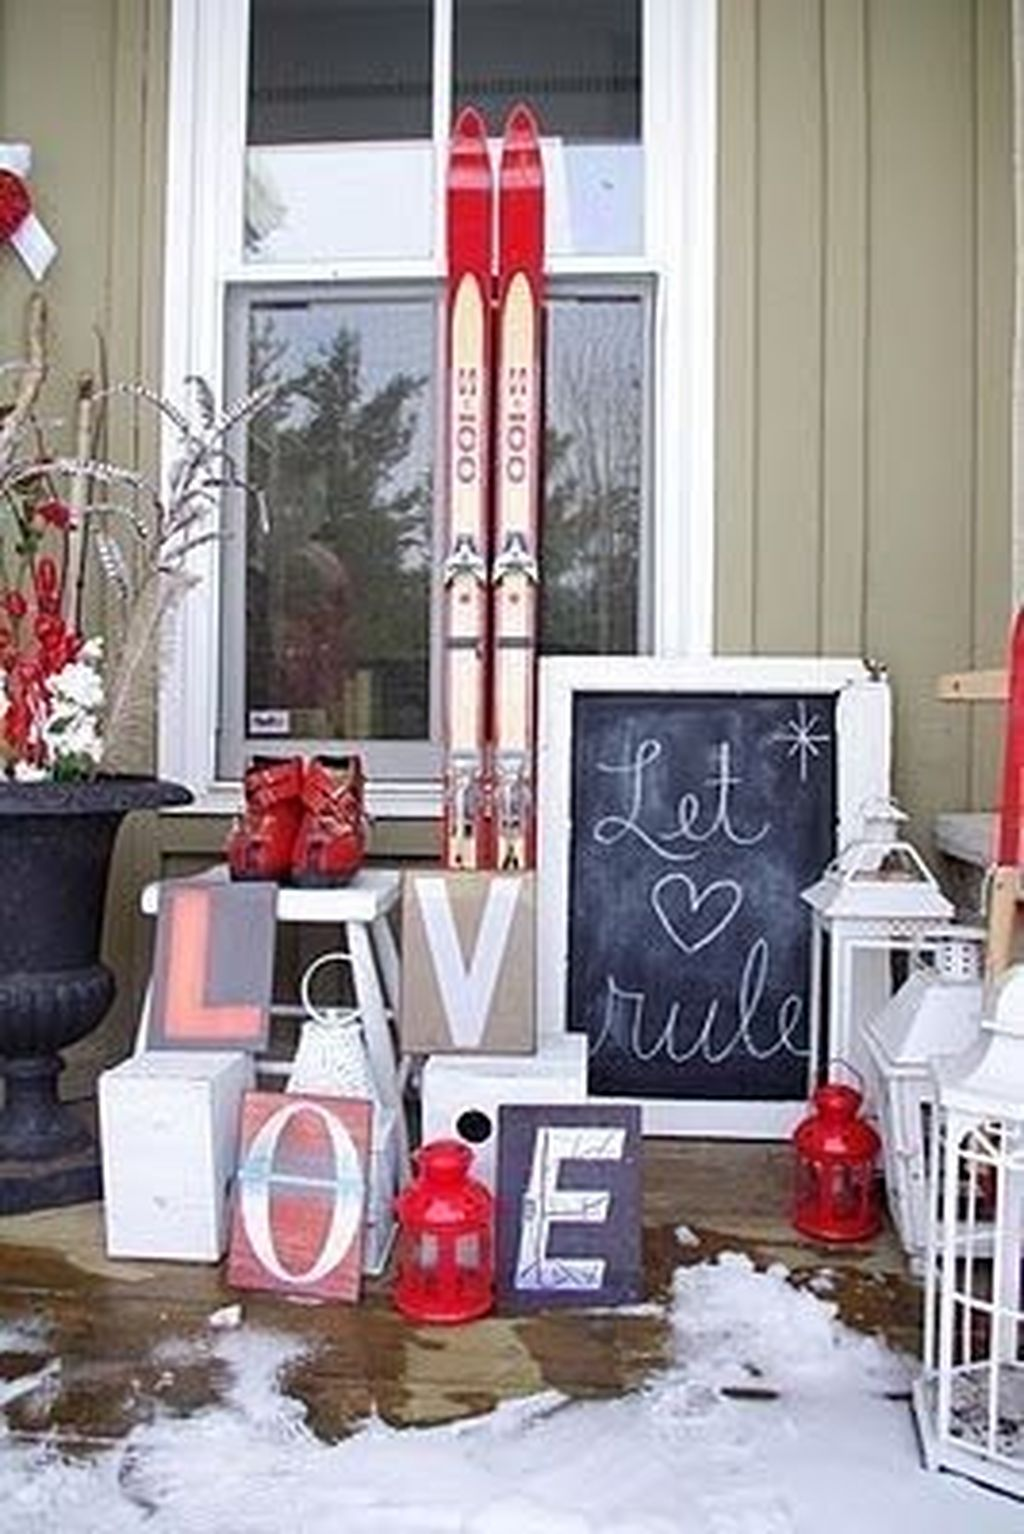 Inspiring Outdoor Valentine Decor Ideas That You Definitely Like 01